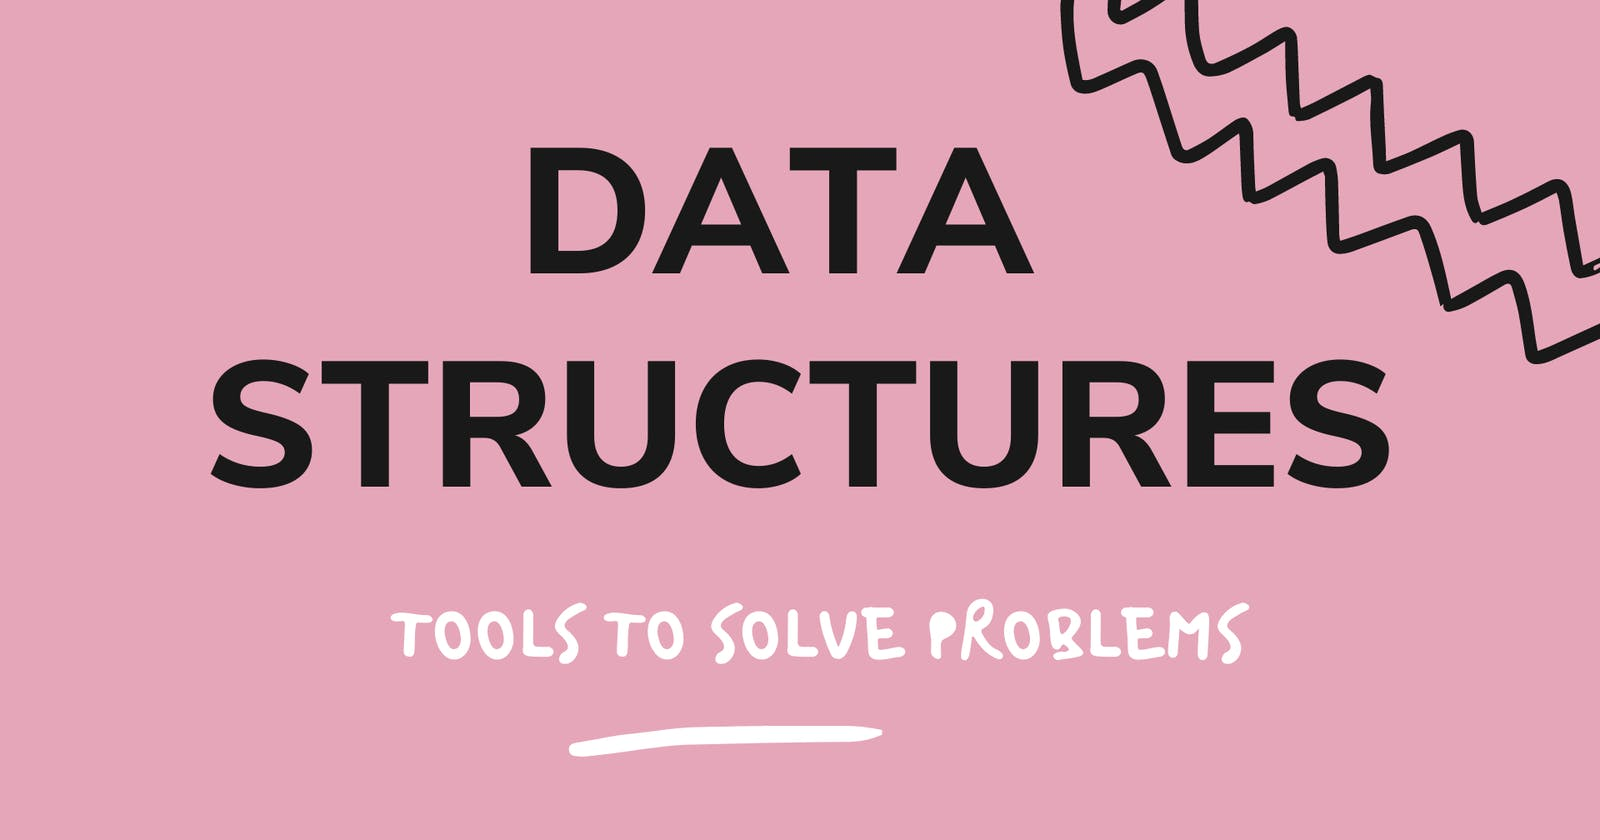 Data Structures - Tools to solve problems